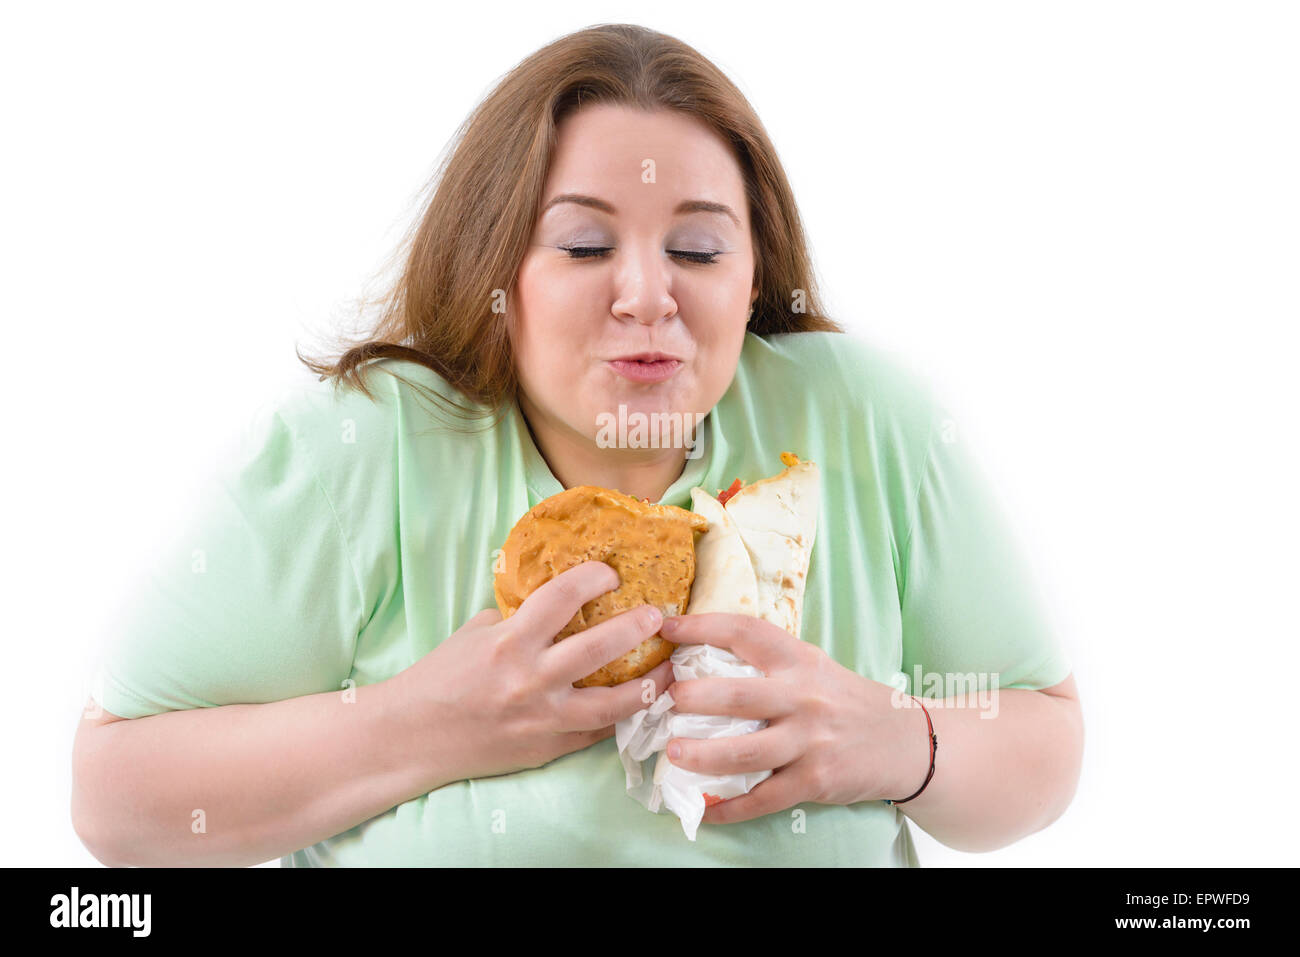 Corpulent woman having addiction to unhealthy food. Happy holding some high calories food. - Stock Image